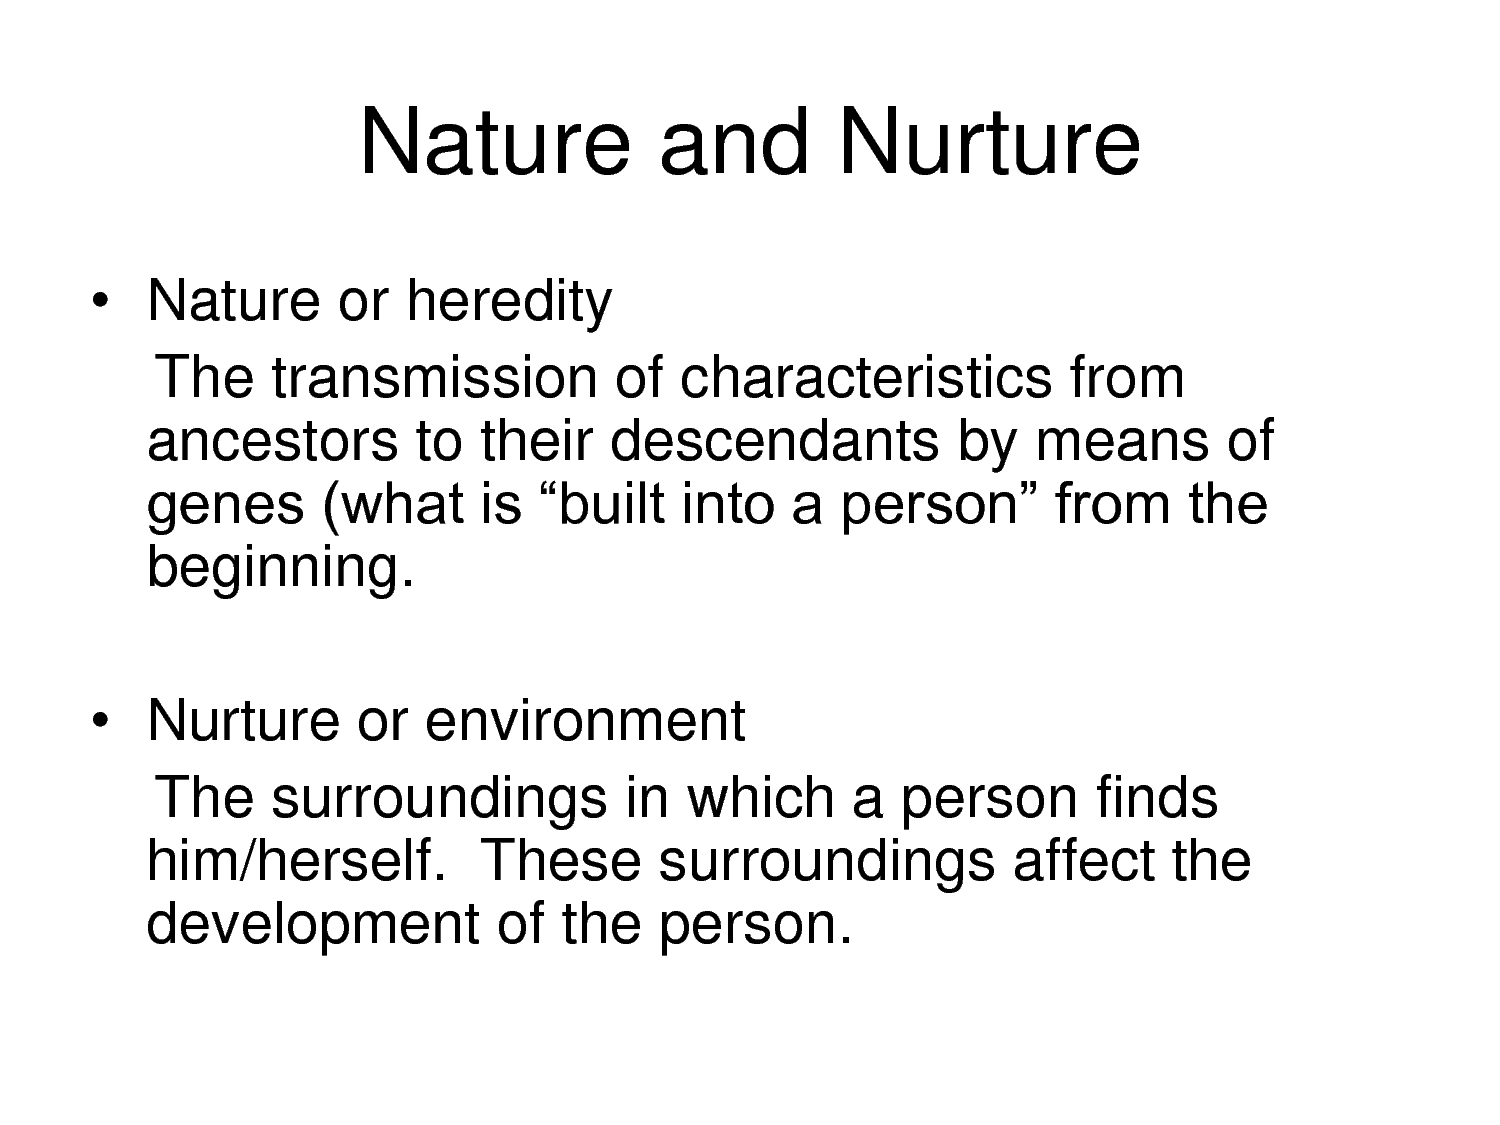 quotes about nature nurture debate quotes